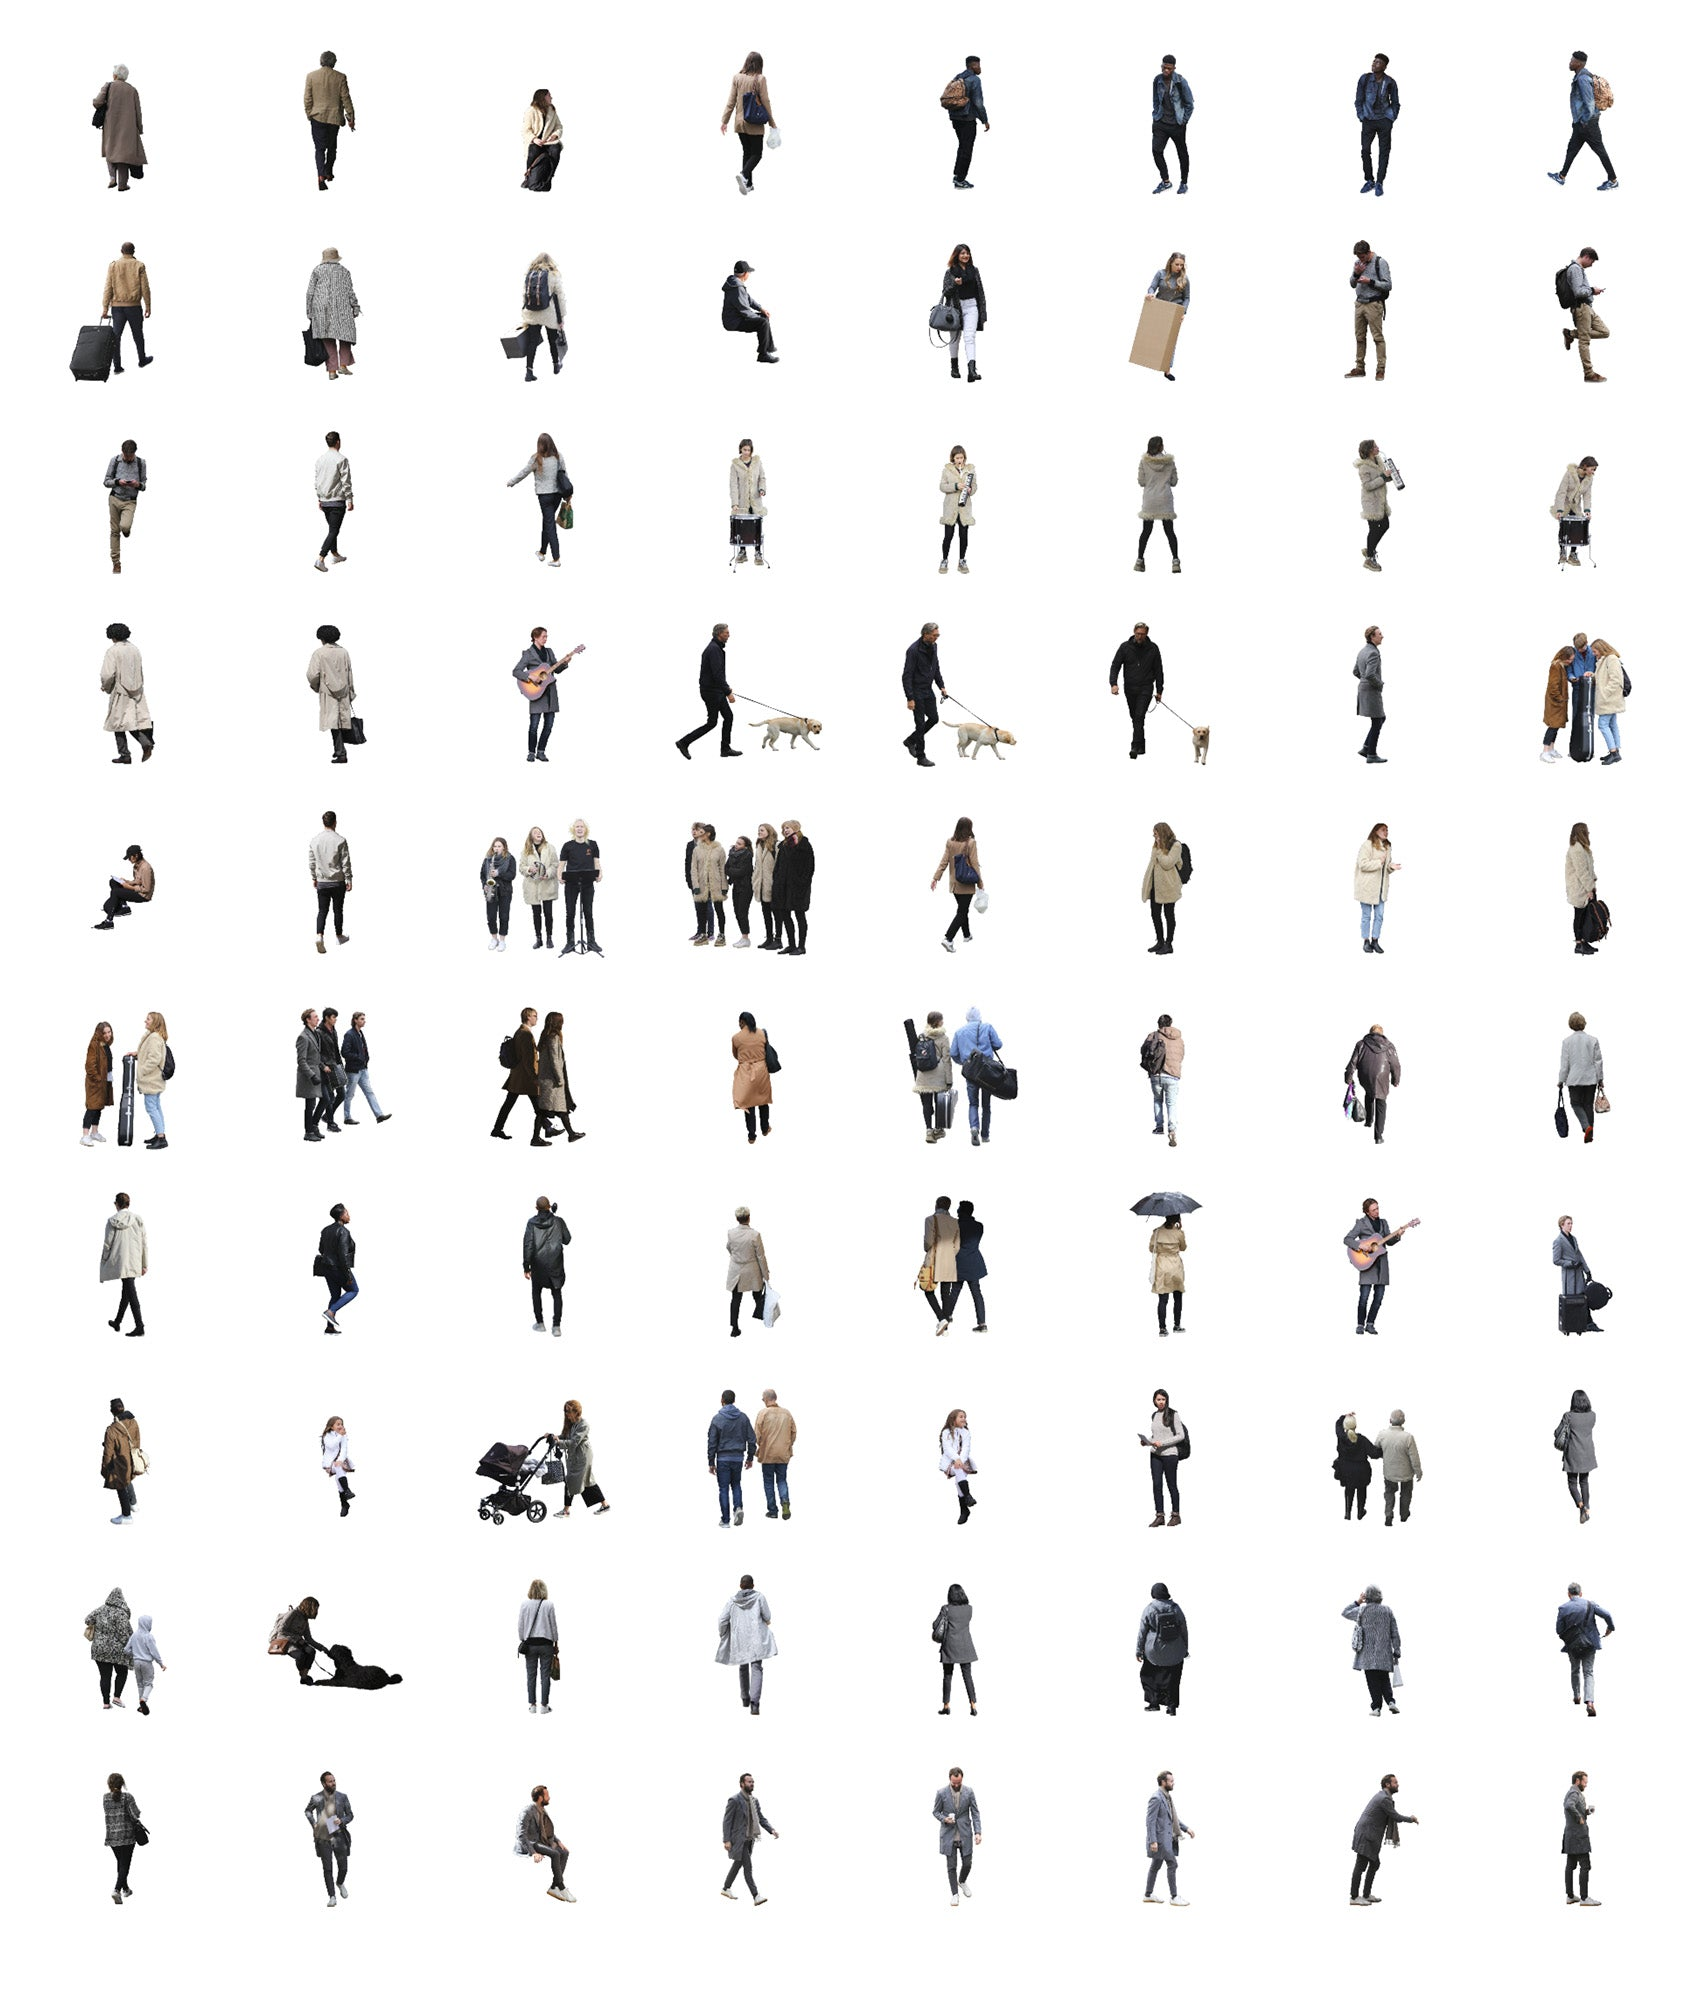 Cutout People Special - 1200 cutouts